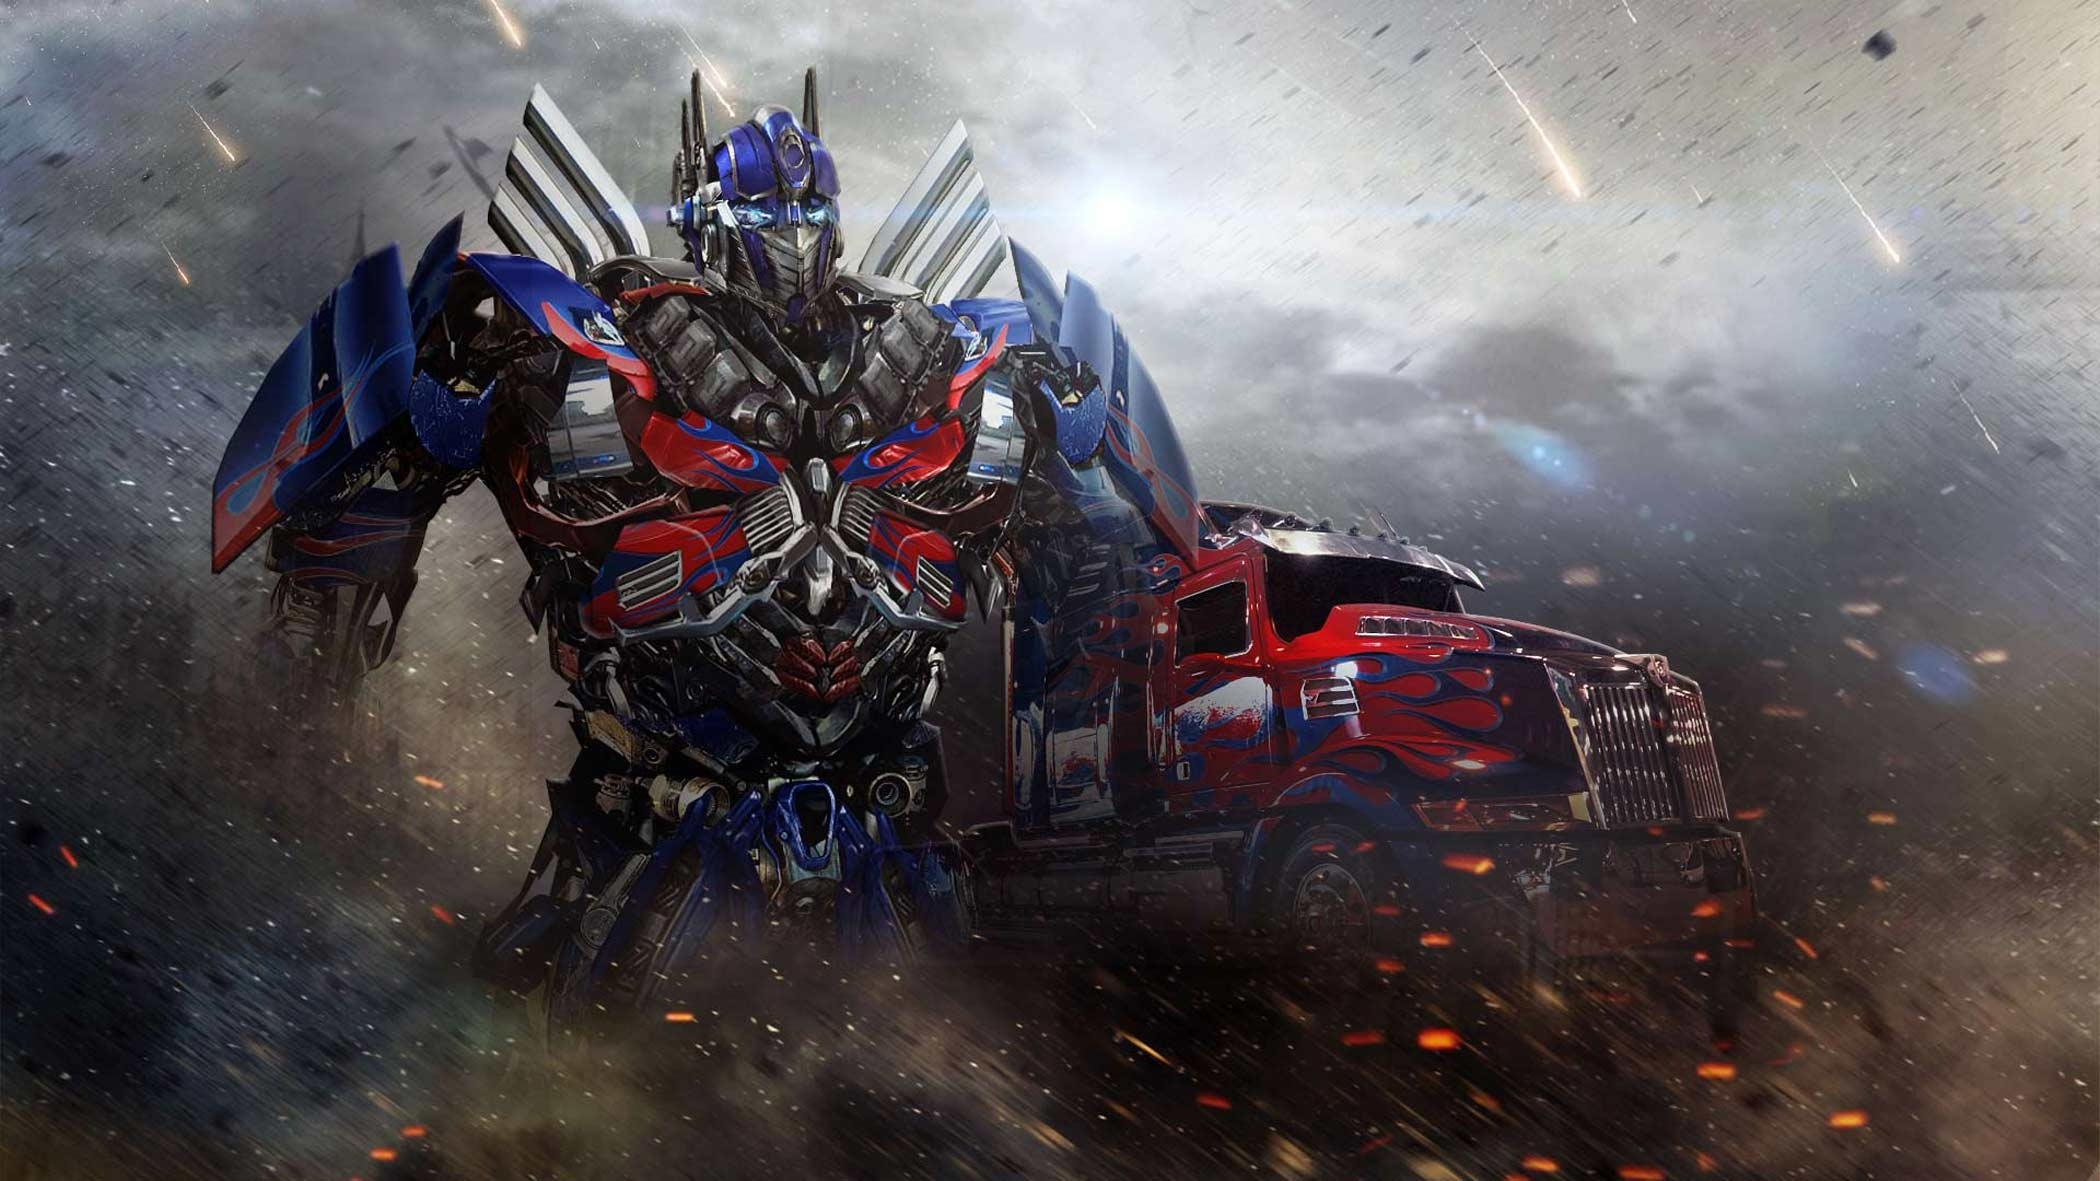 transformers-4-age-of-extinction-wallpapers-hd - wallpaper.wiki